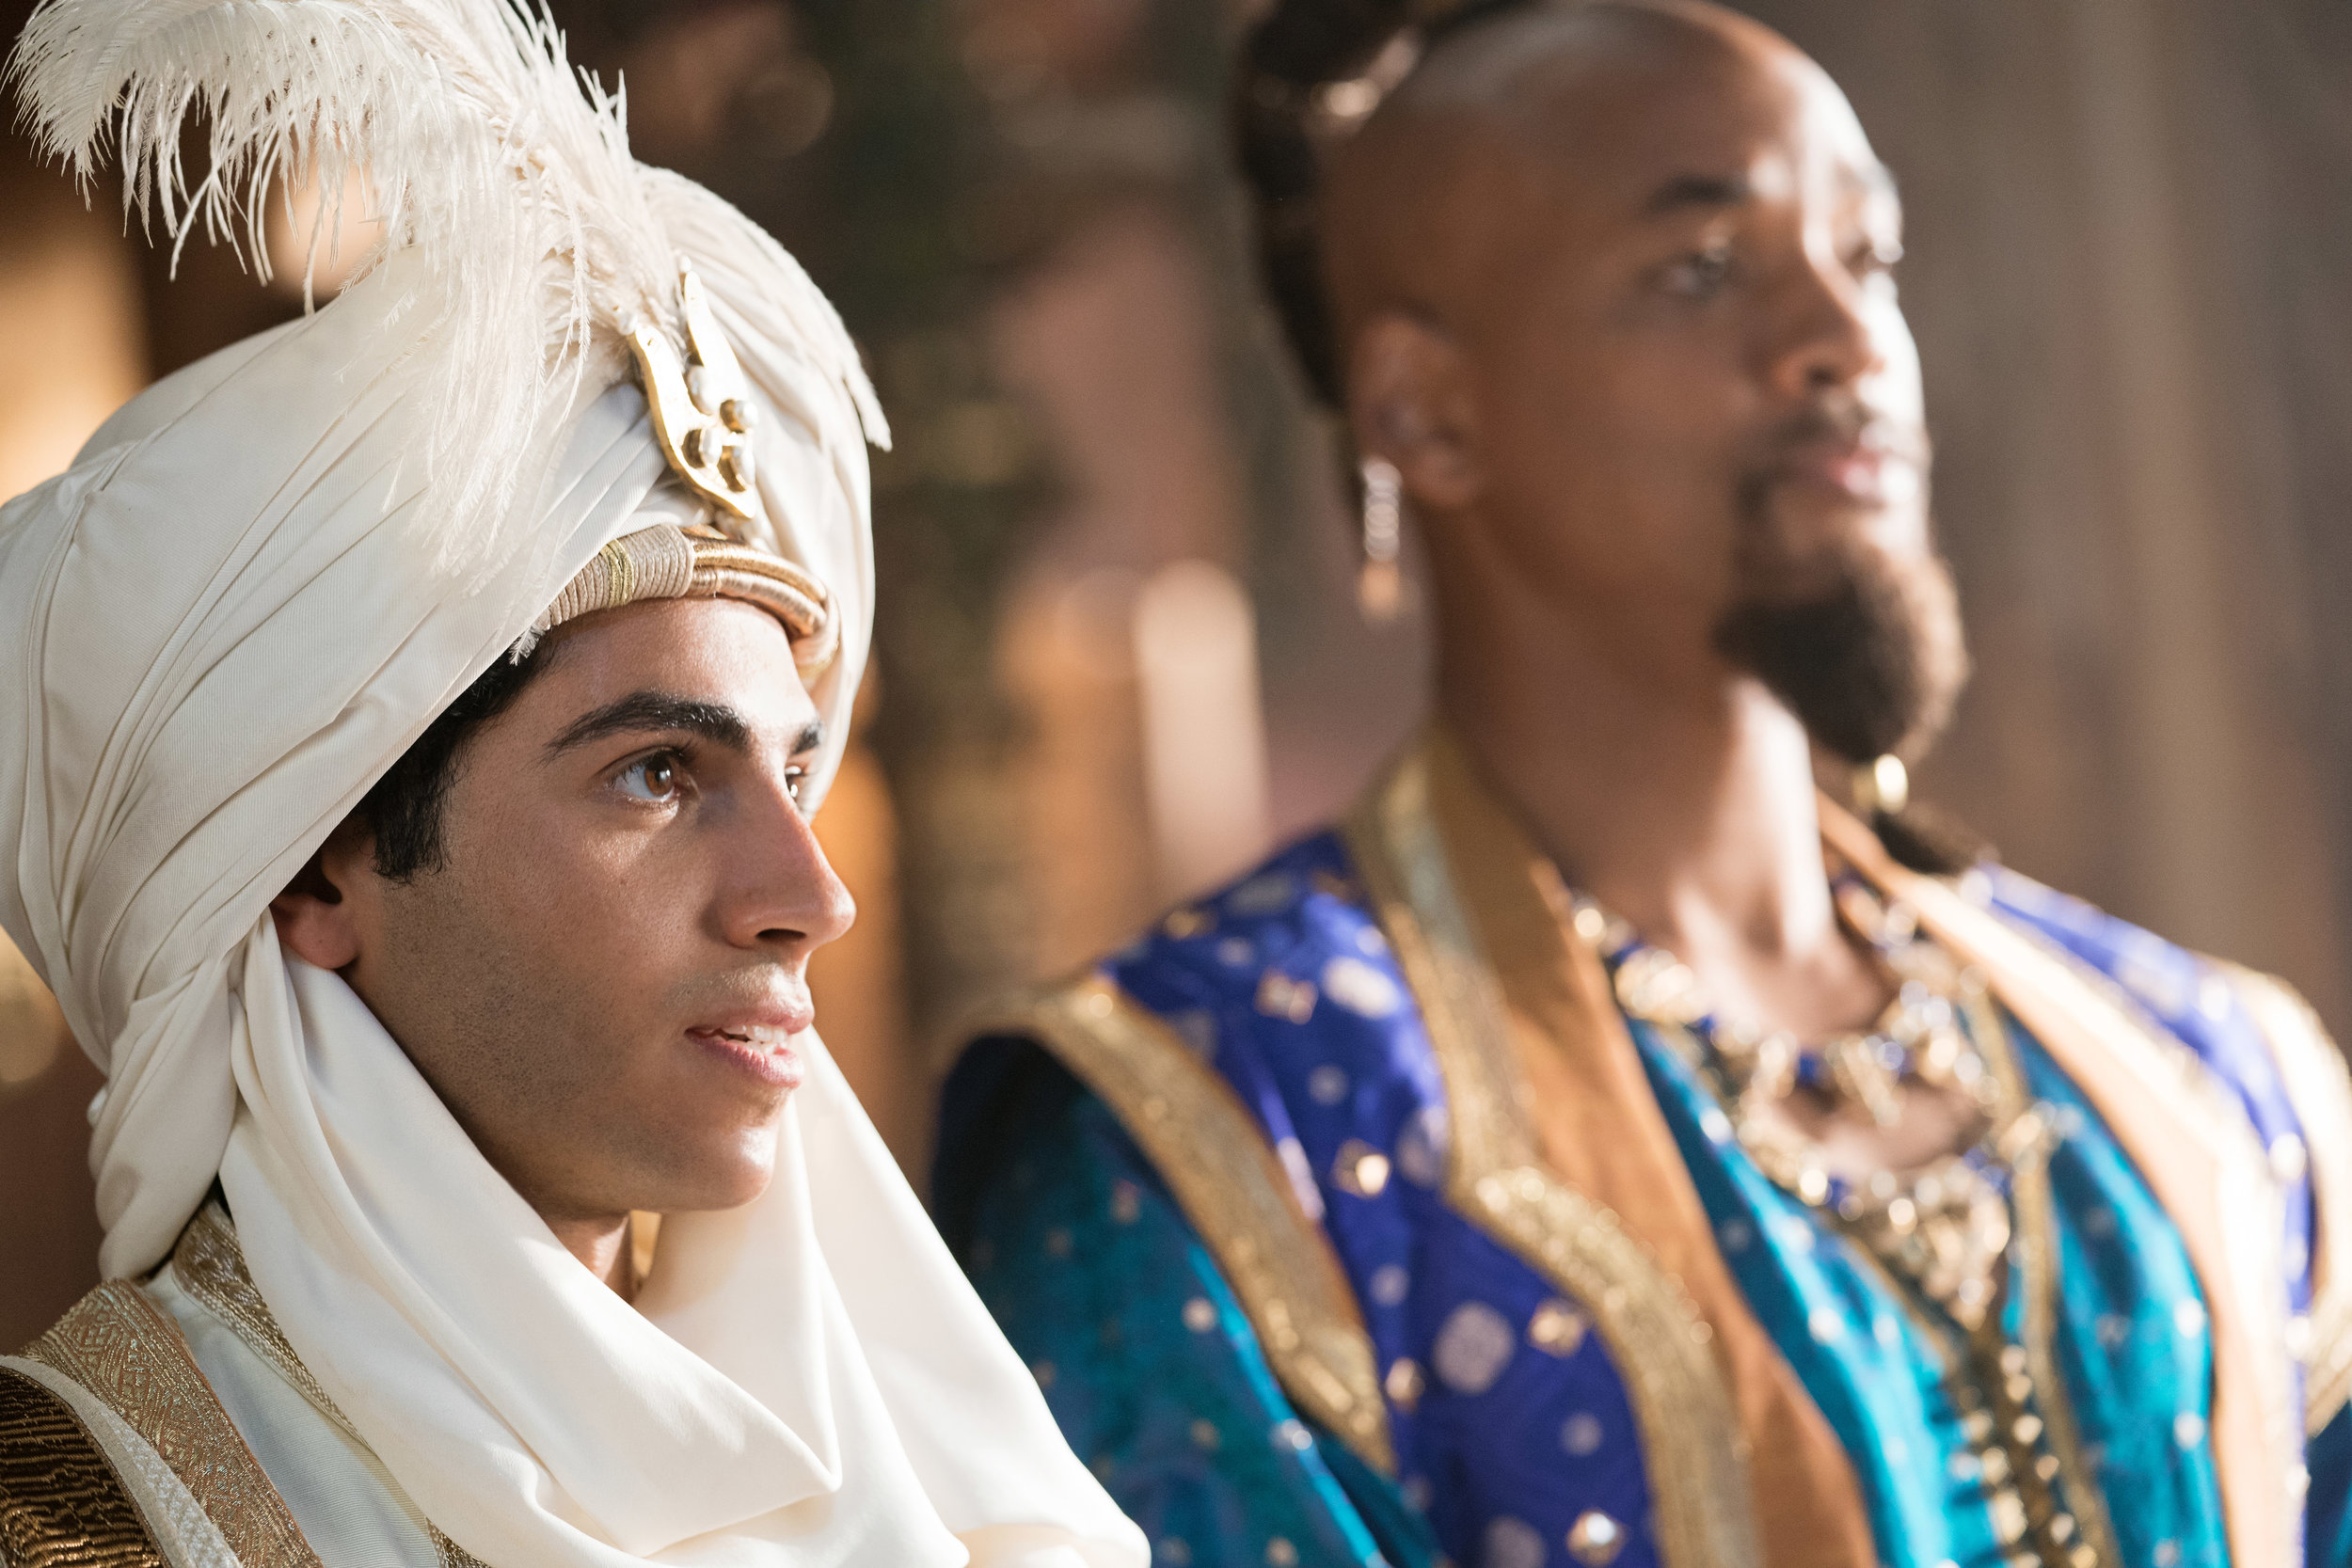 Mena Massoud as Aladdin and Will Smith as the Genie in Disney's live-action Aladdin.